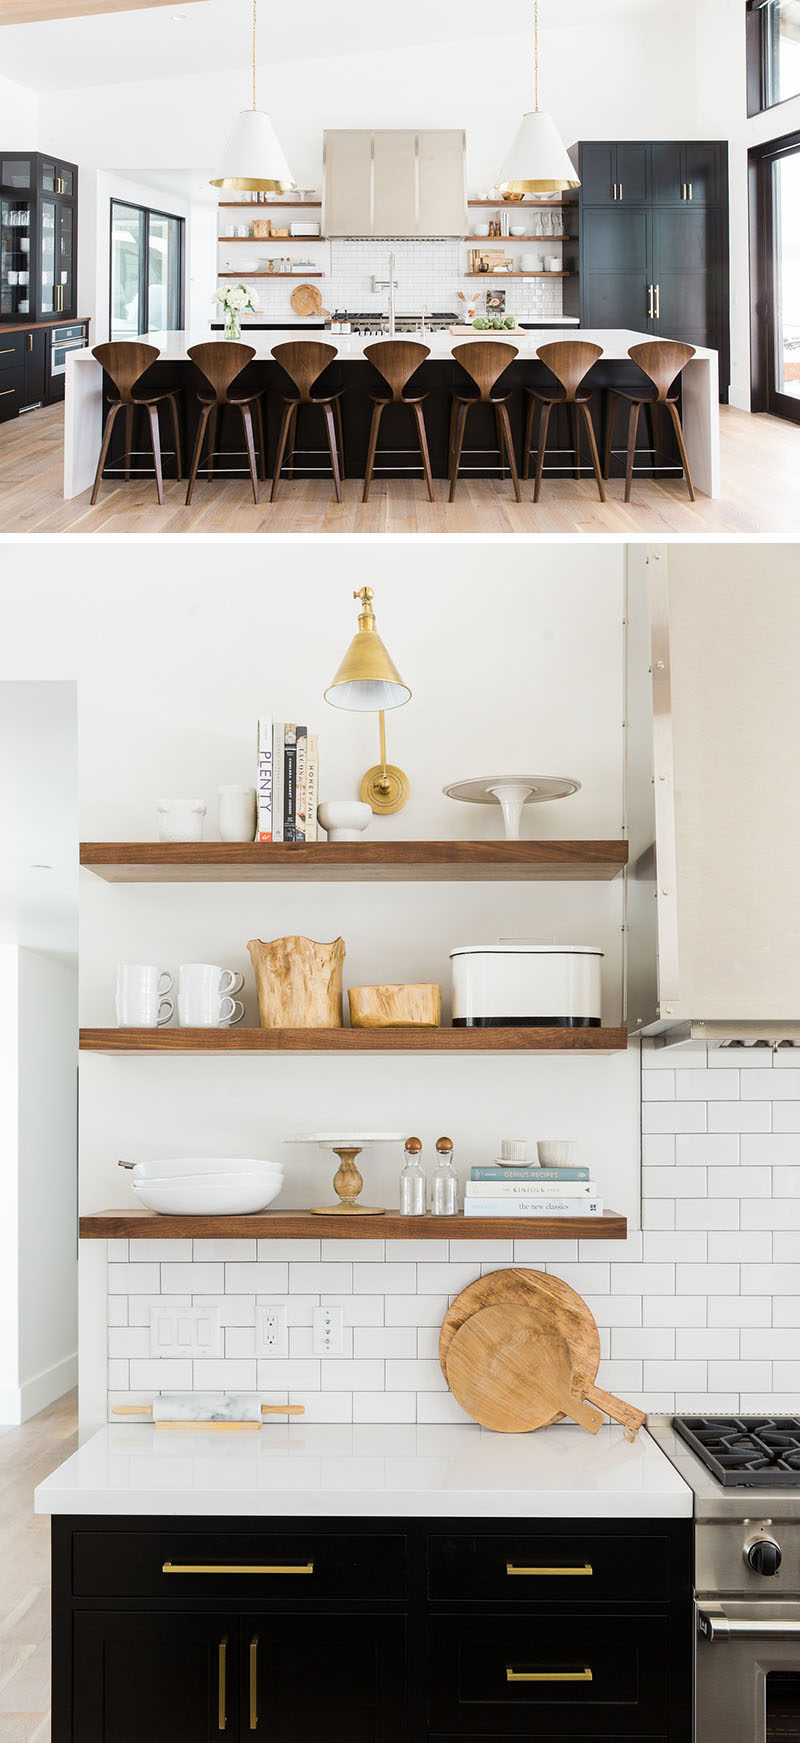 The Benefits Of Open Shelving In The Kitchen: 19 Examples Of Open Shelving